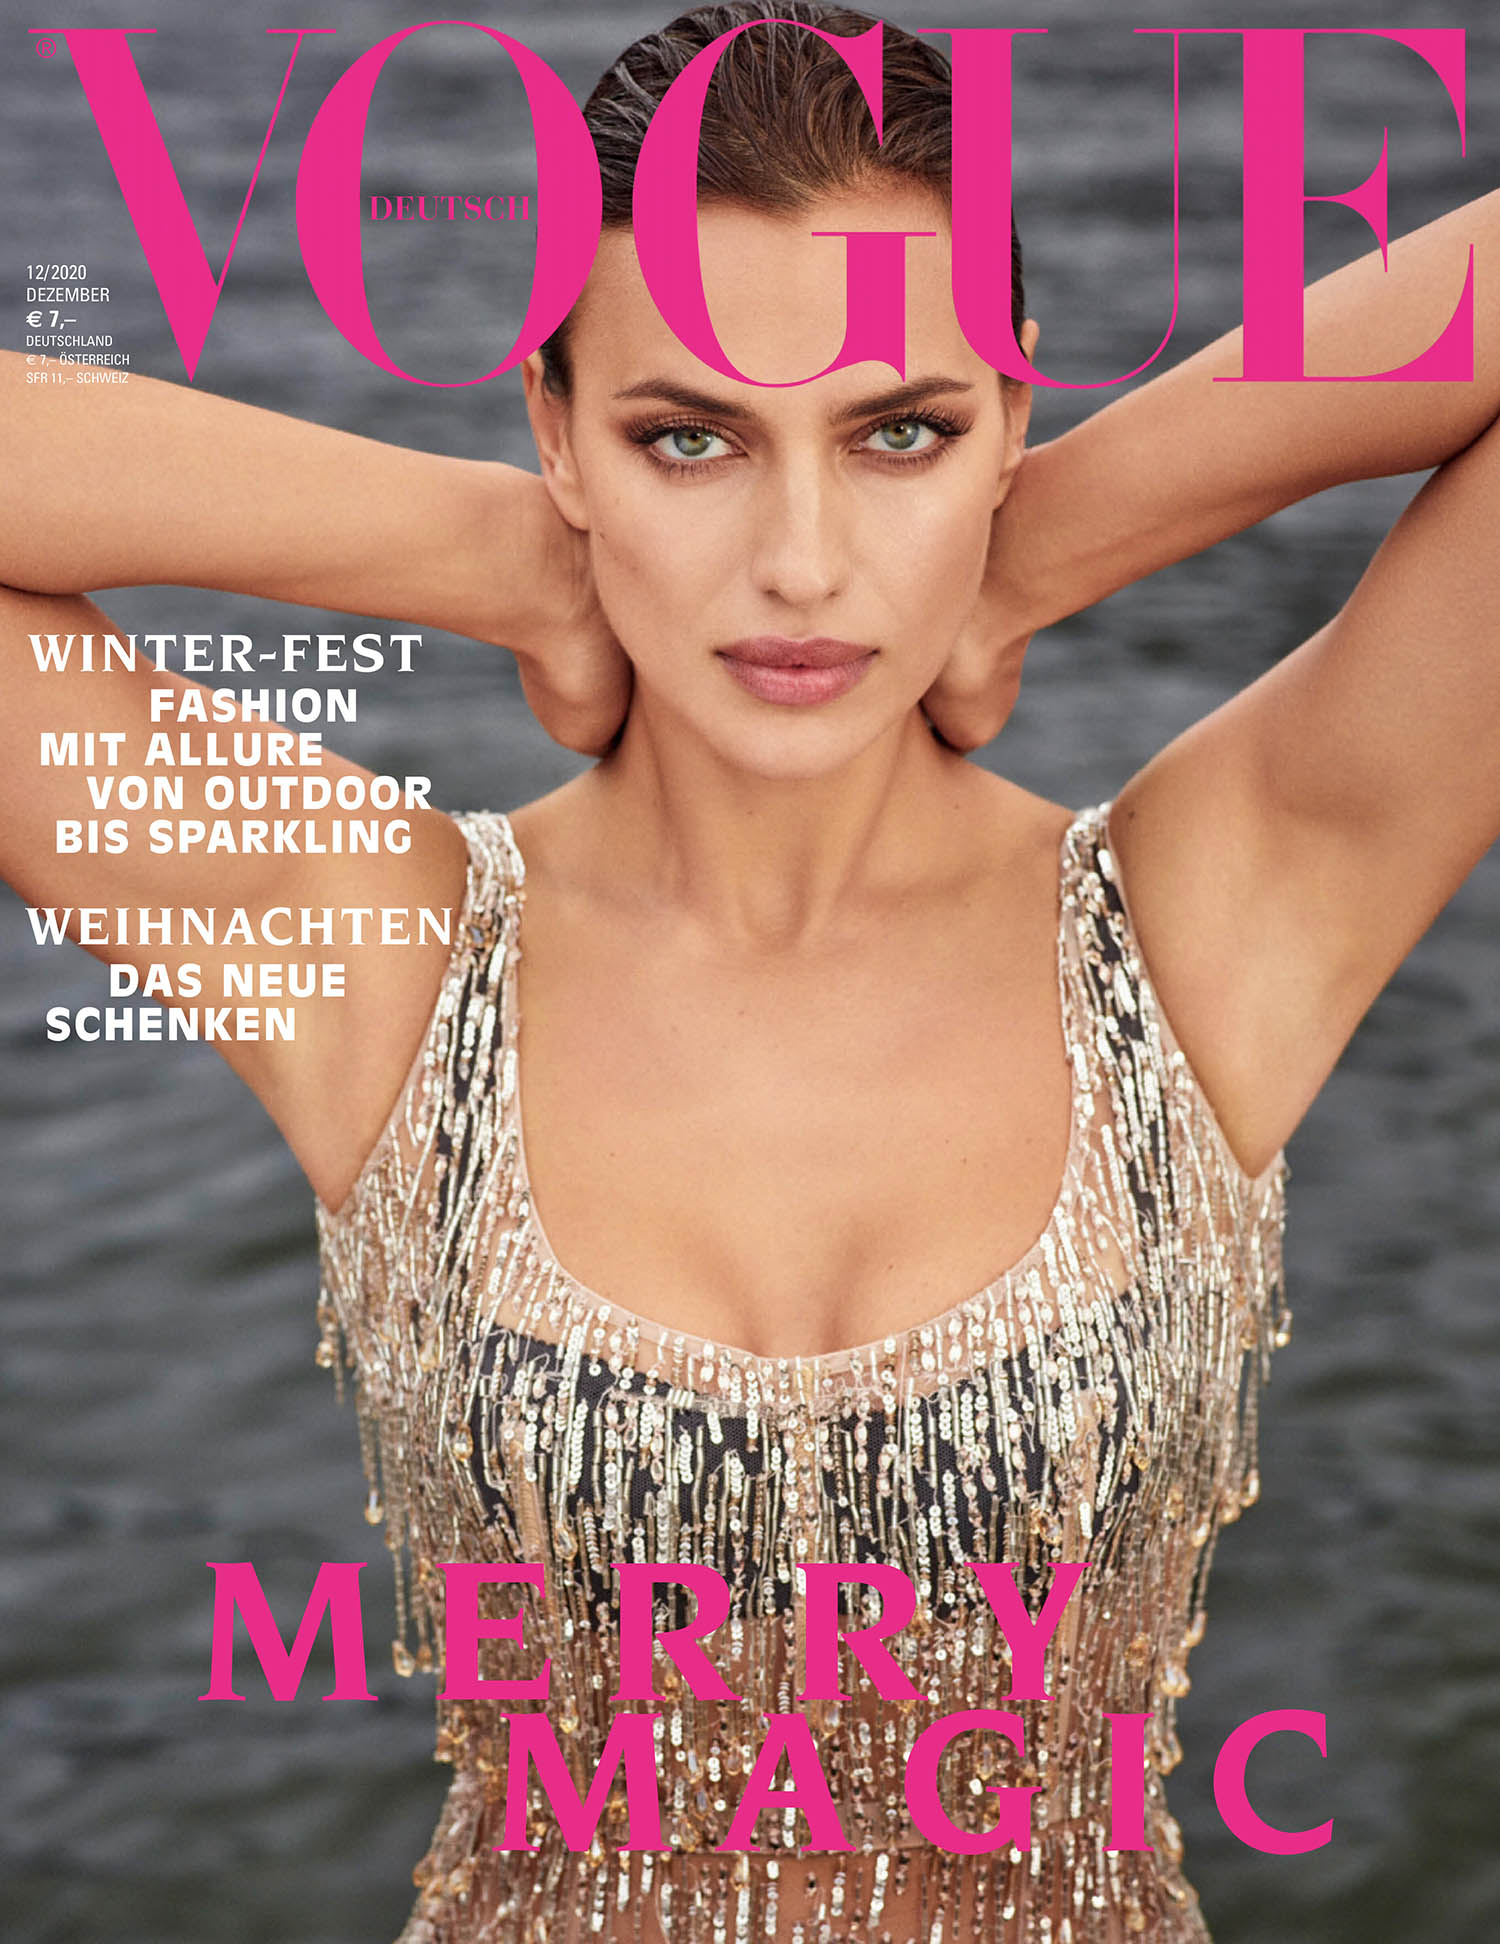 Irina Shayk covers Vogue Germany December 2020 by Luigi & Iango